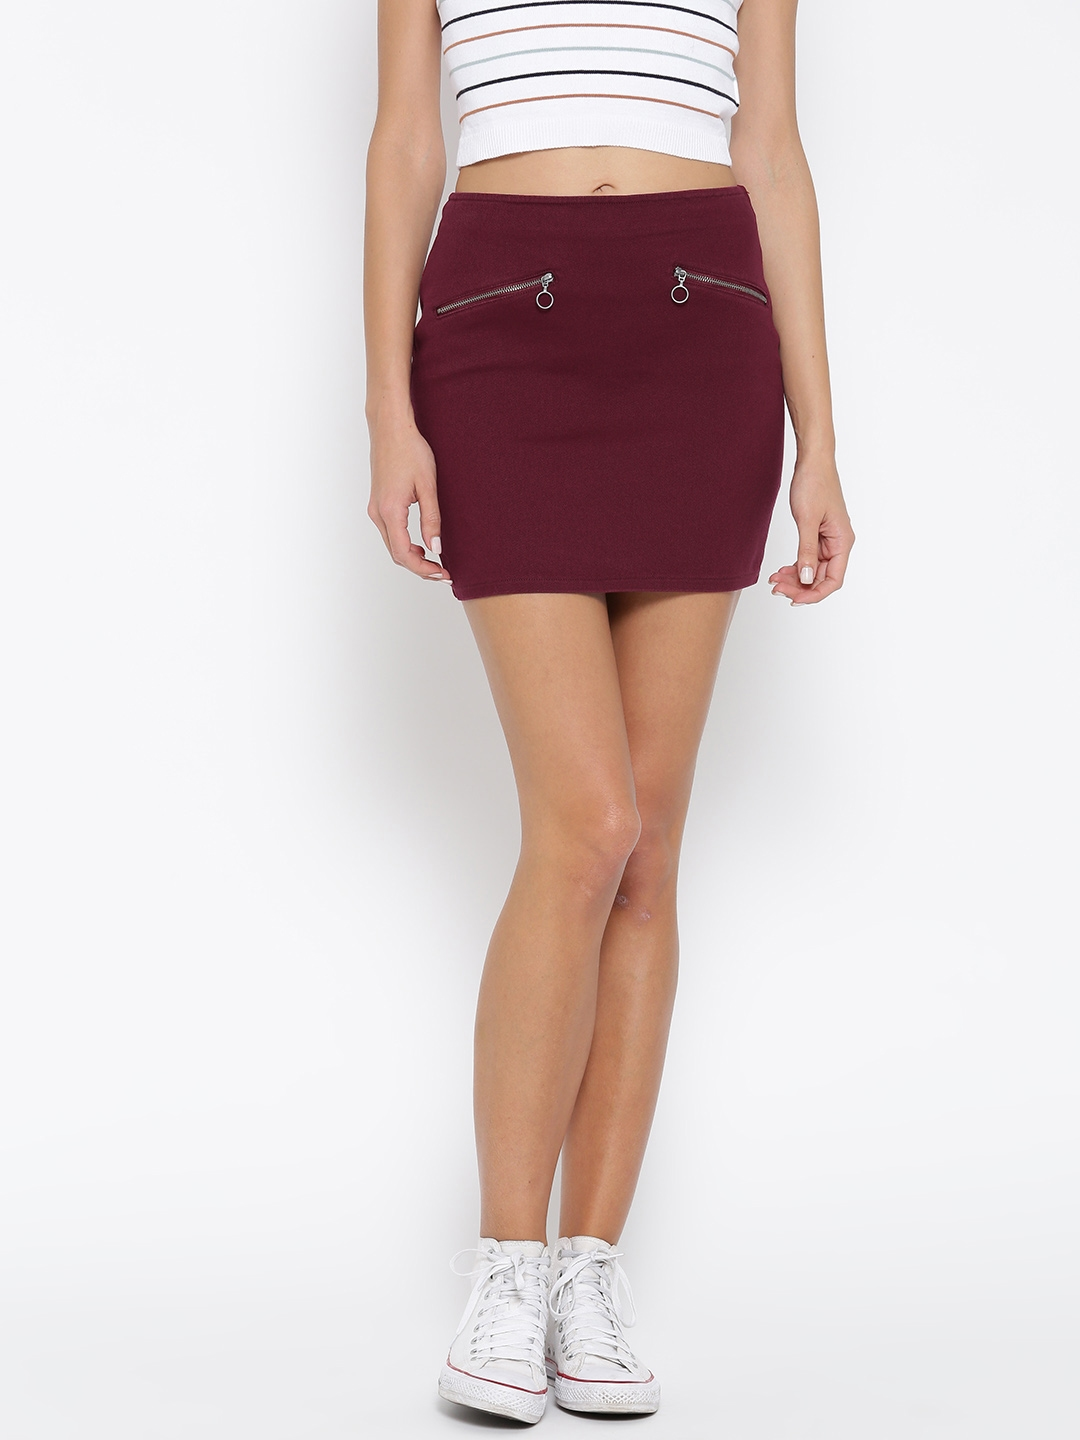 1d5a8b52a Buy FOREVER 21 Burgundy Denim Mini Skirt - Skirts for Women 2360558 ...